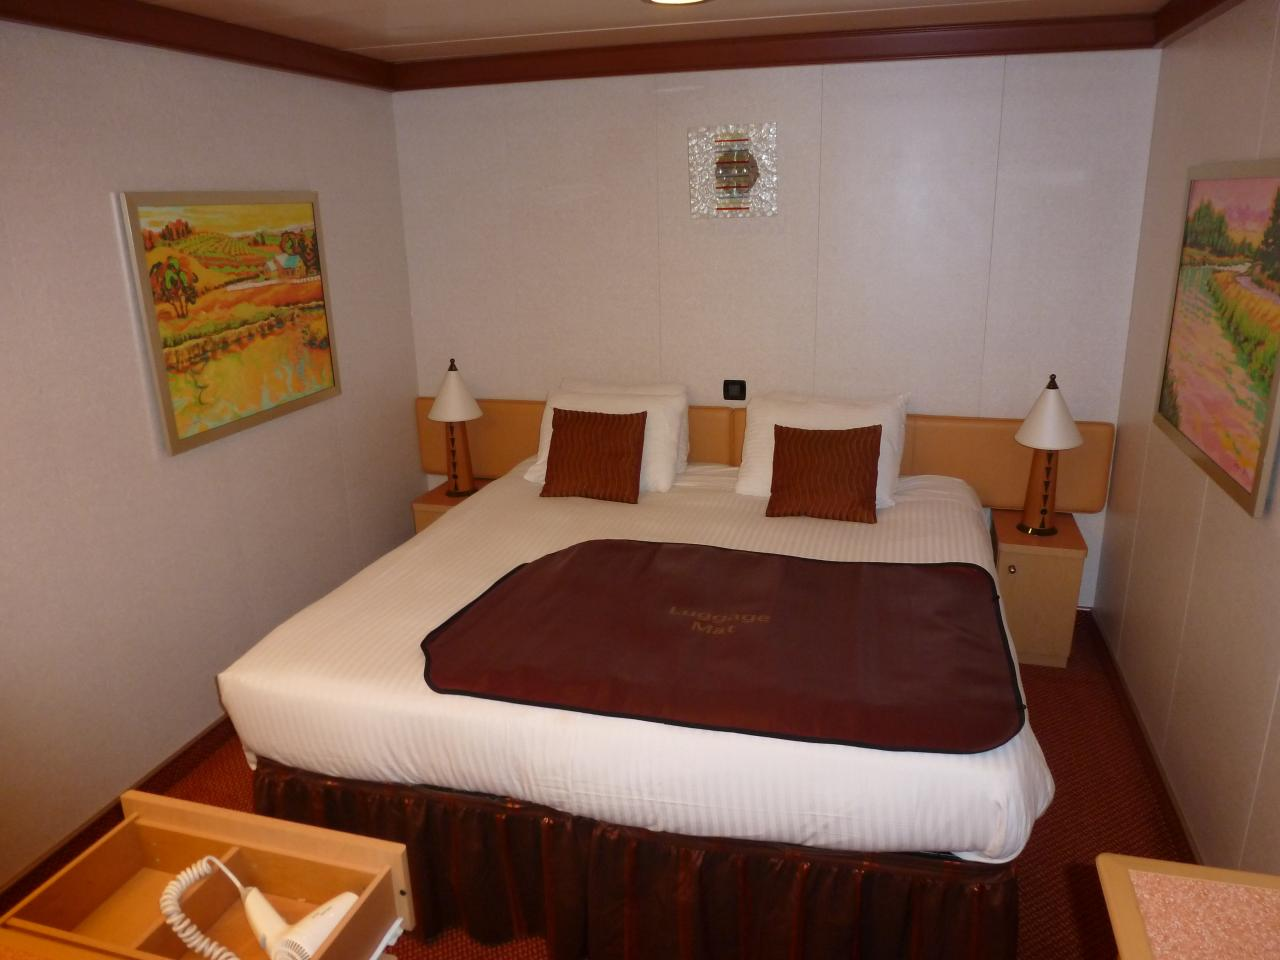 Carnival dream cruise review for cabin 10239 for Dream cabins